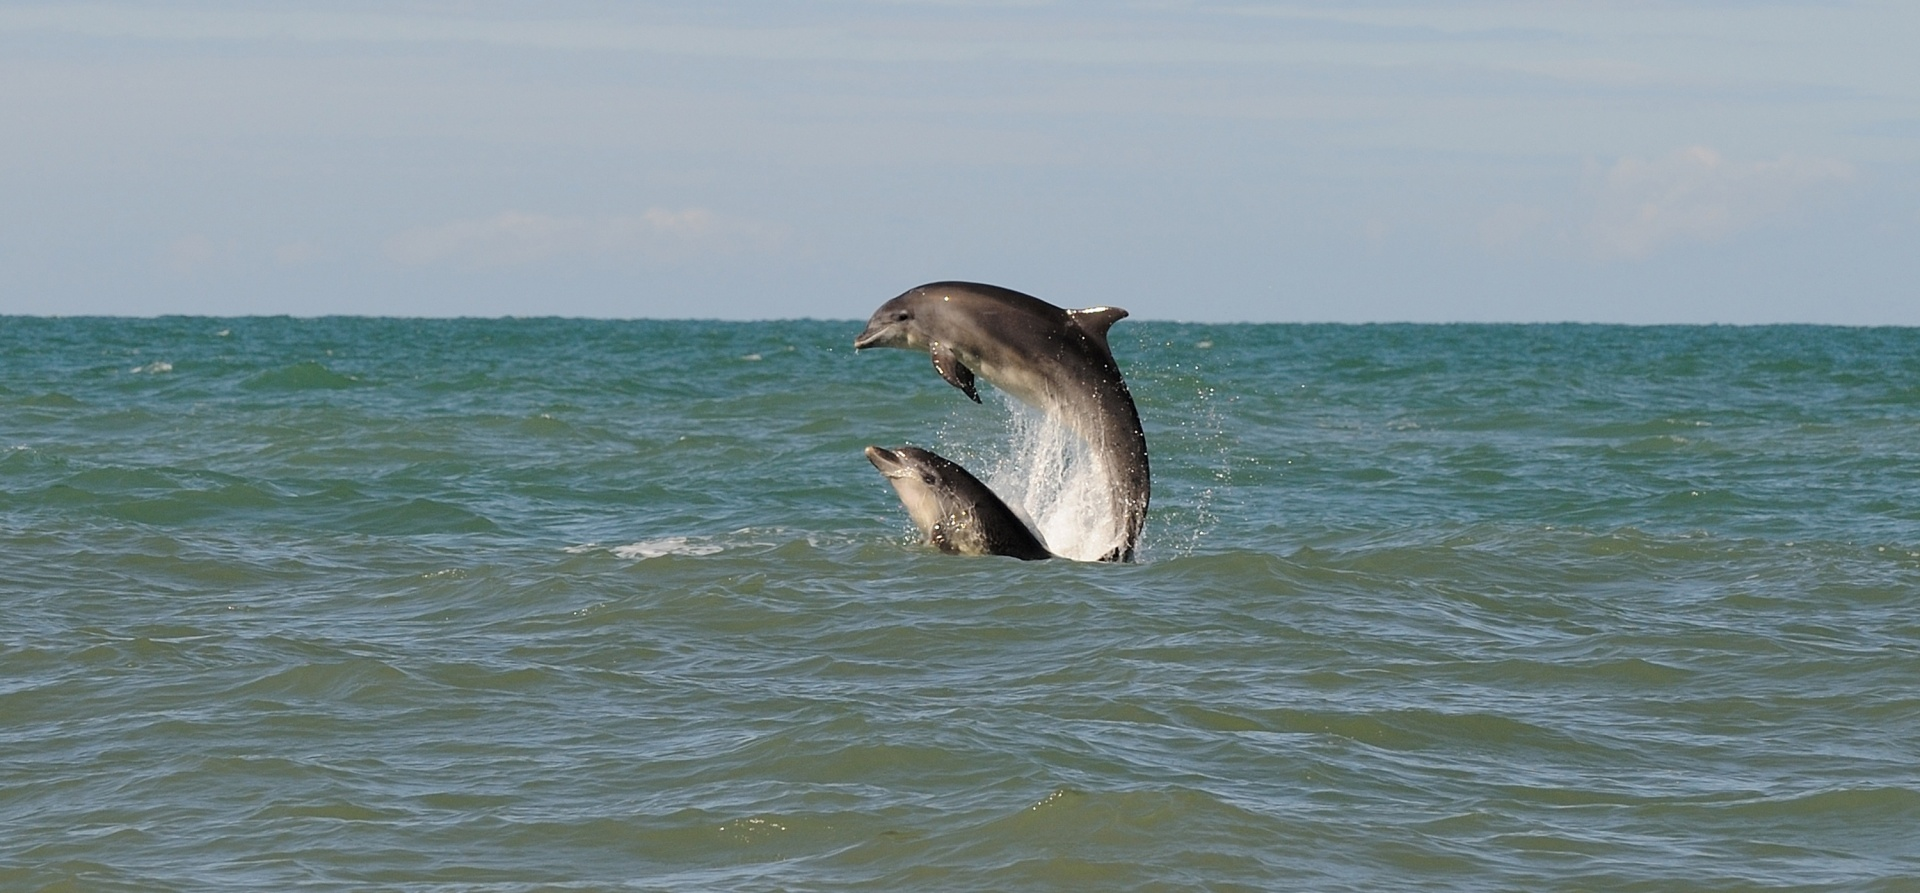 New Quay Dolphin Spotting Experience for Two-3